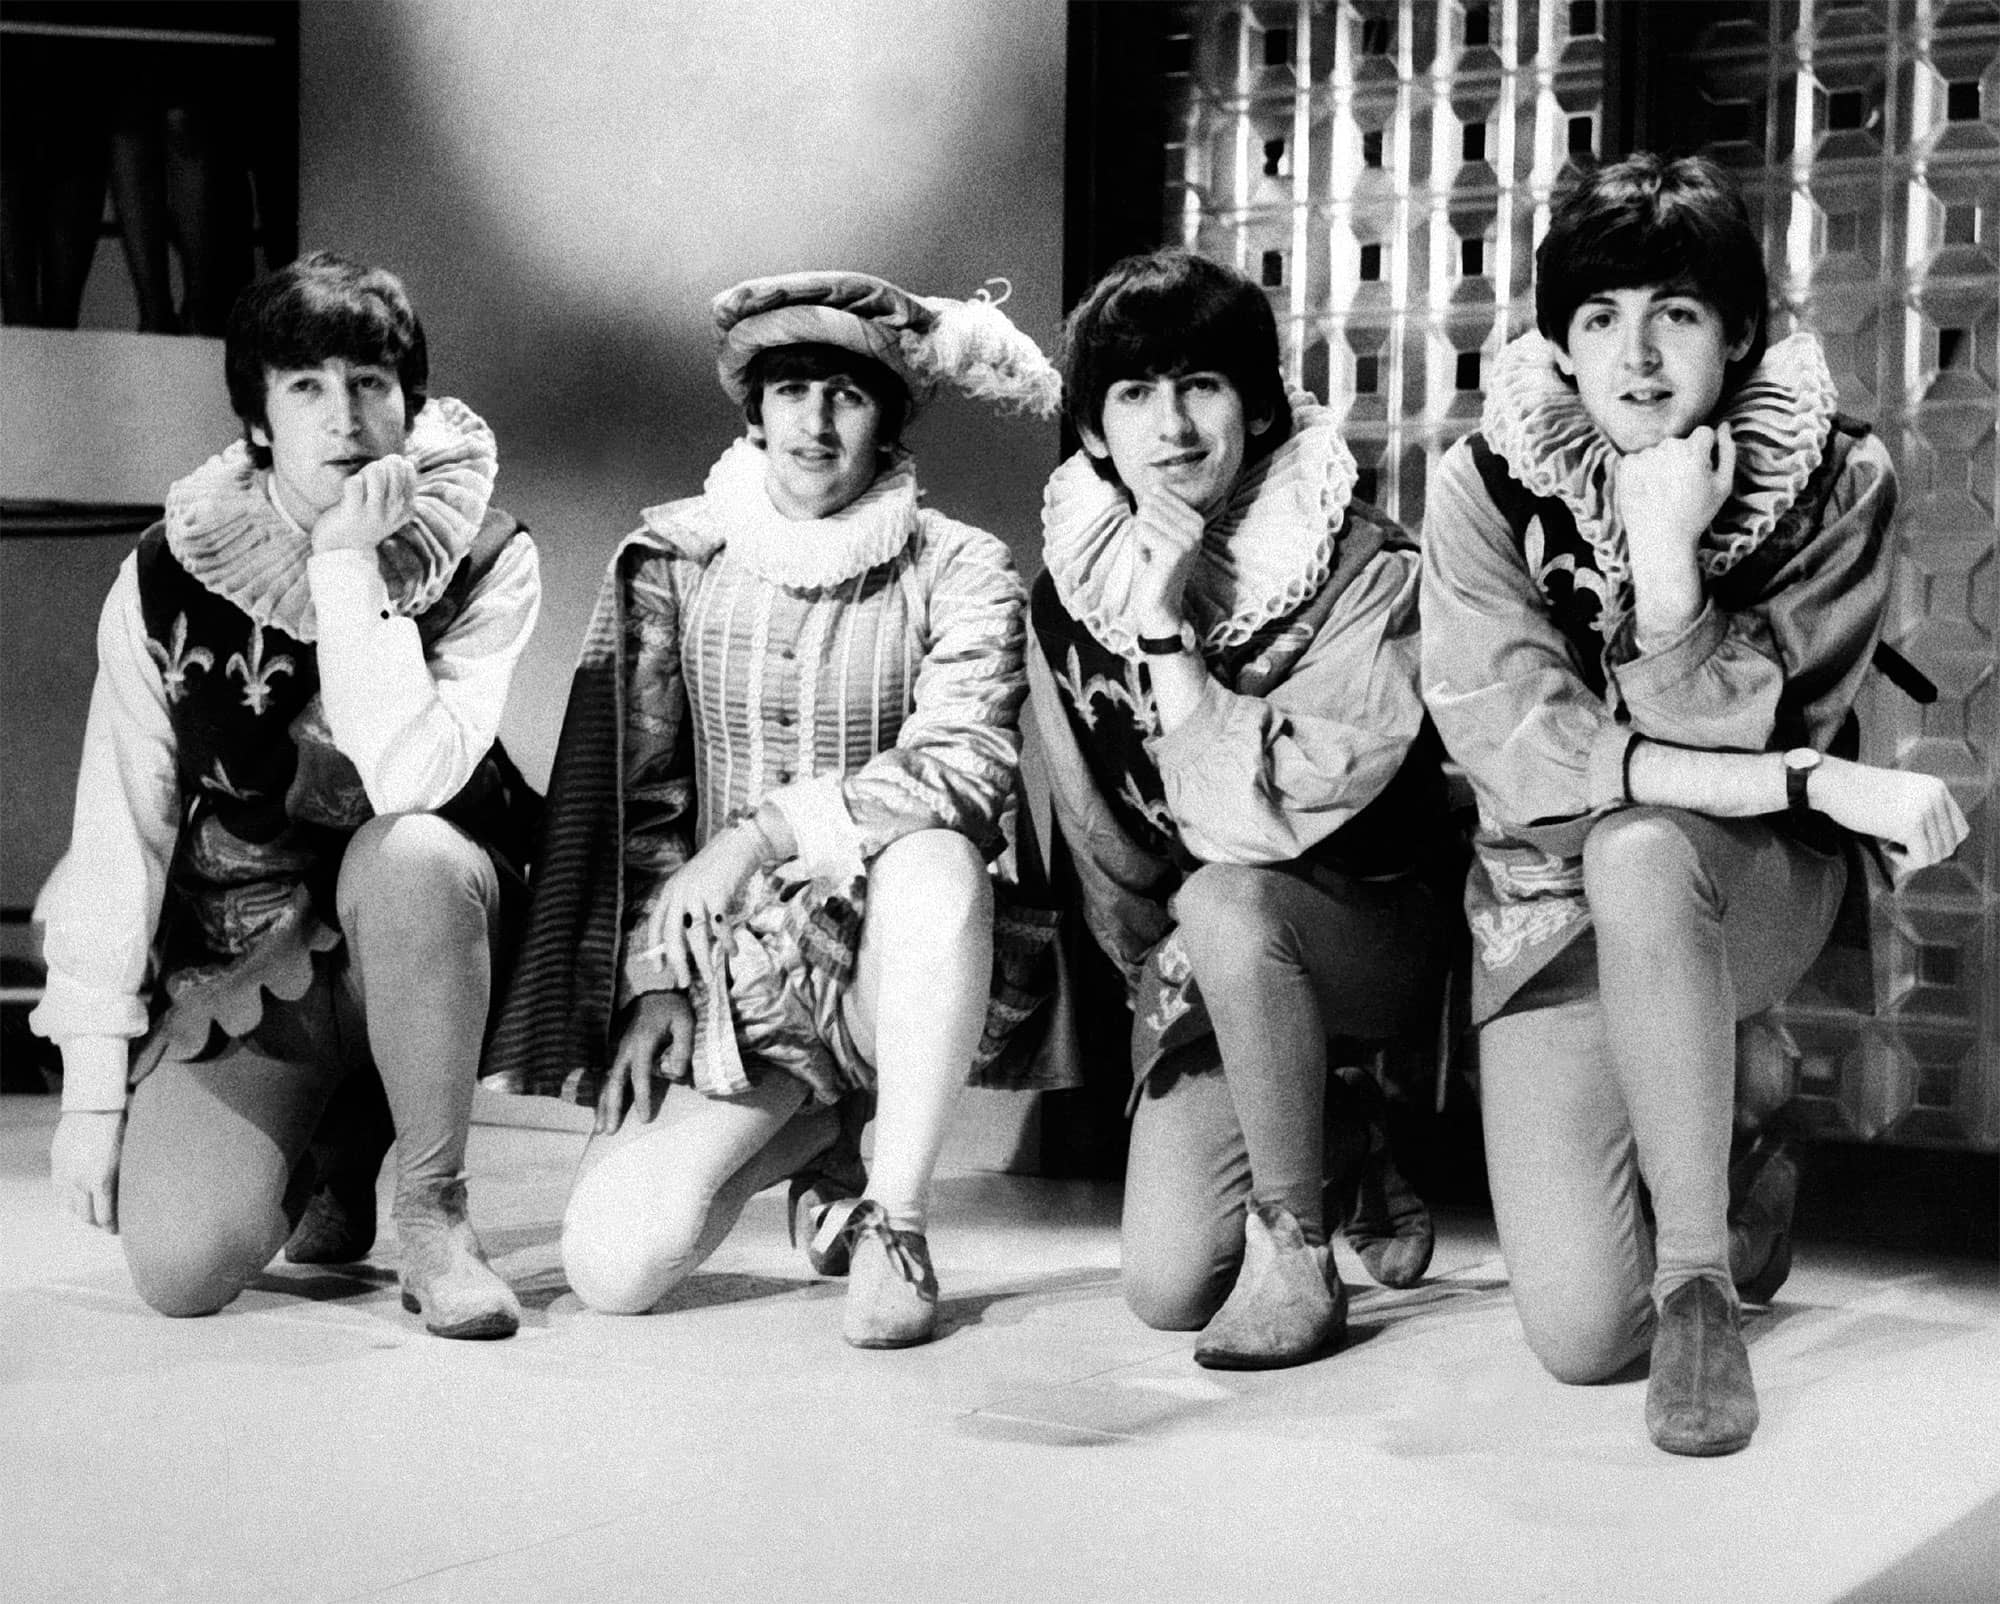 2019.16 All Together Now (London, 2015) — Darin P. Murphy, The Beatles, Richard Lester, Peter Cook, Laugh-In